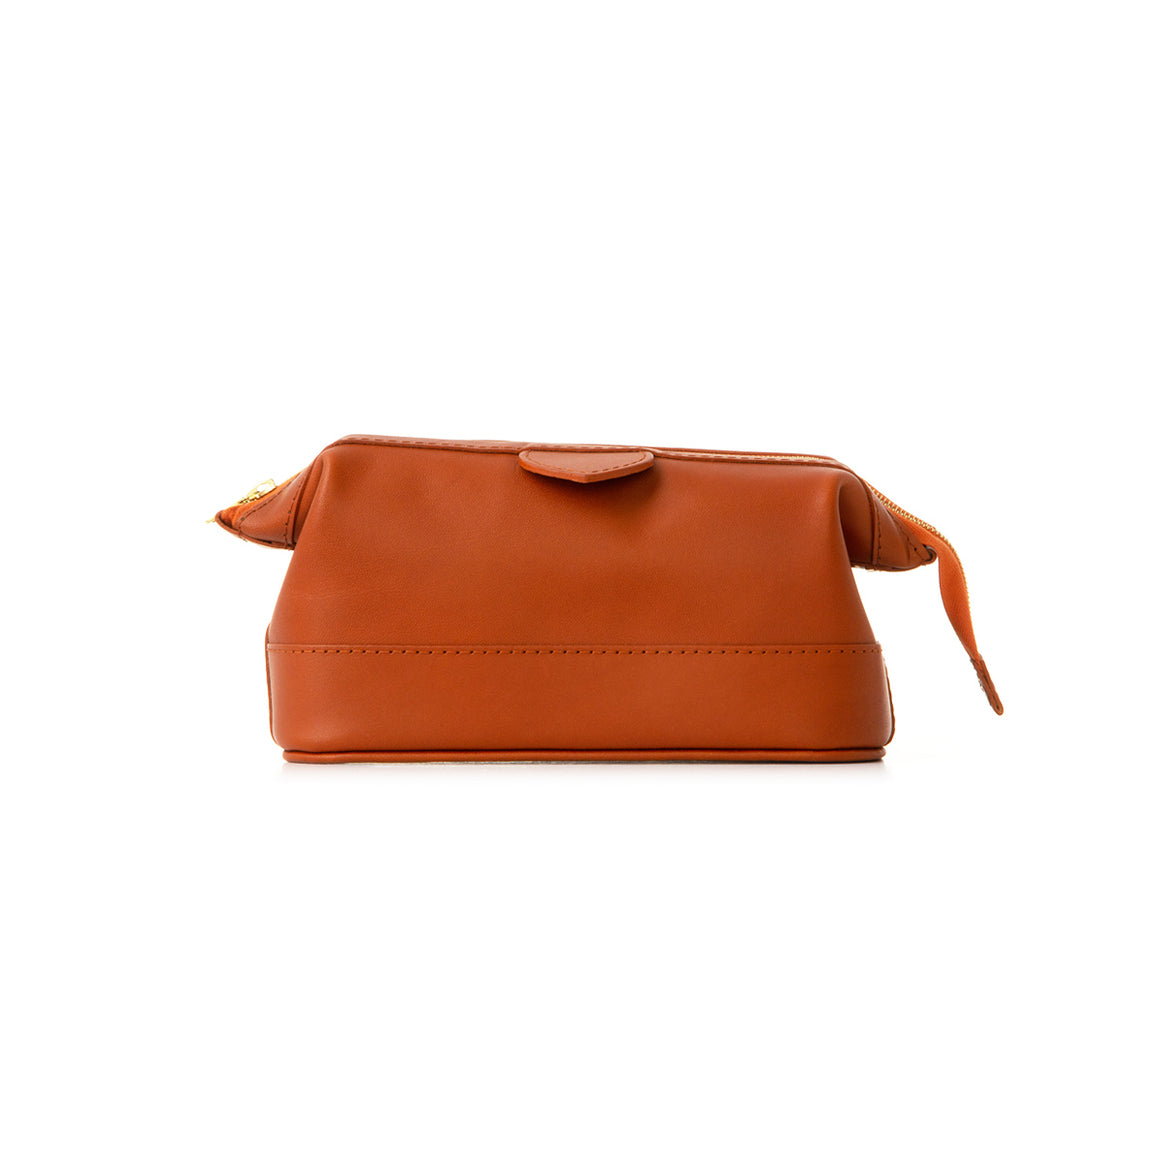 Small Tan Leather Wash Bag